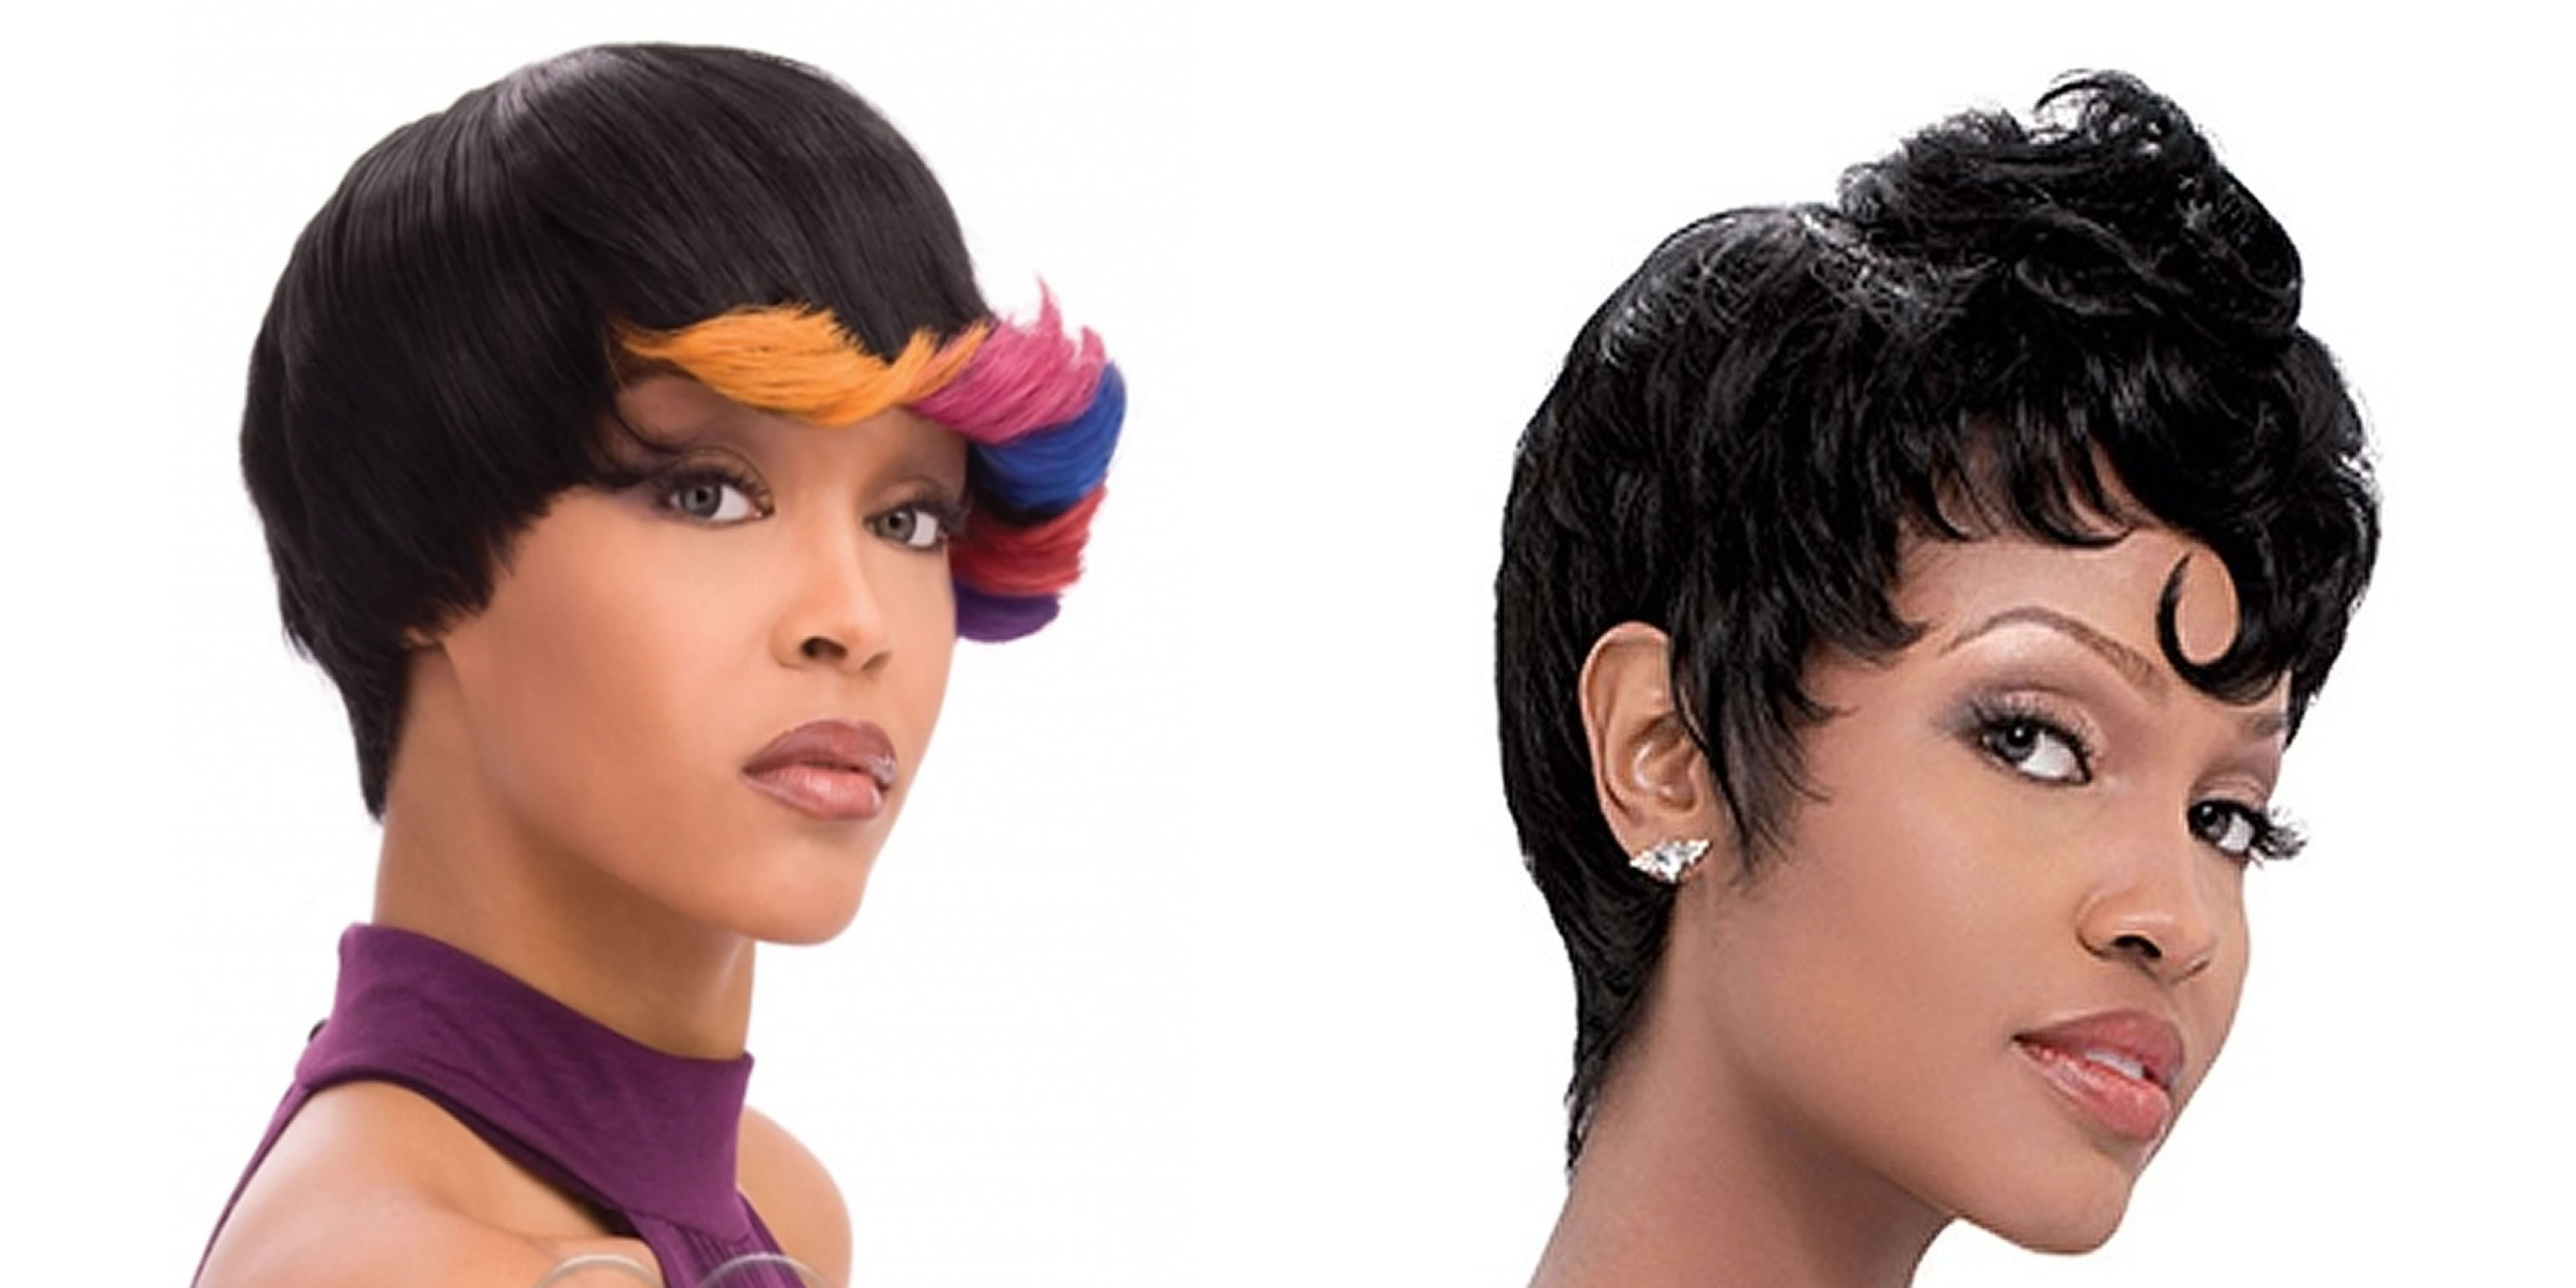 Pixie Hairstyles For Black Women – 60 Cool Short Haircuts For 2017 Throughout Short Haircuts For Black Woman (View 12 of 25)